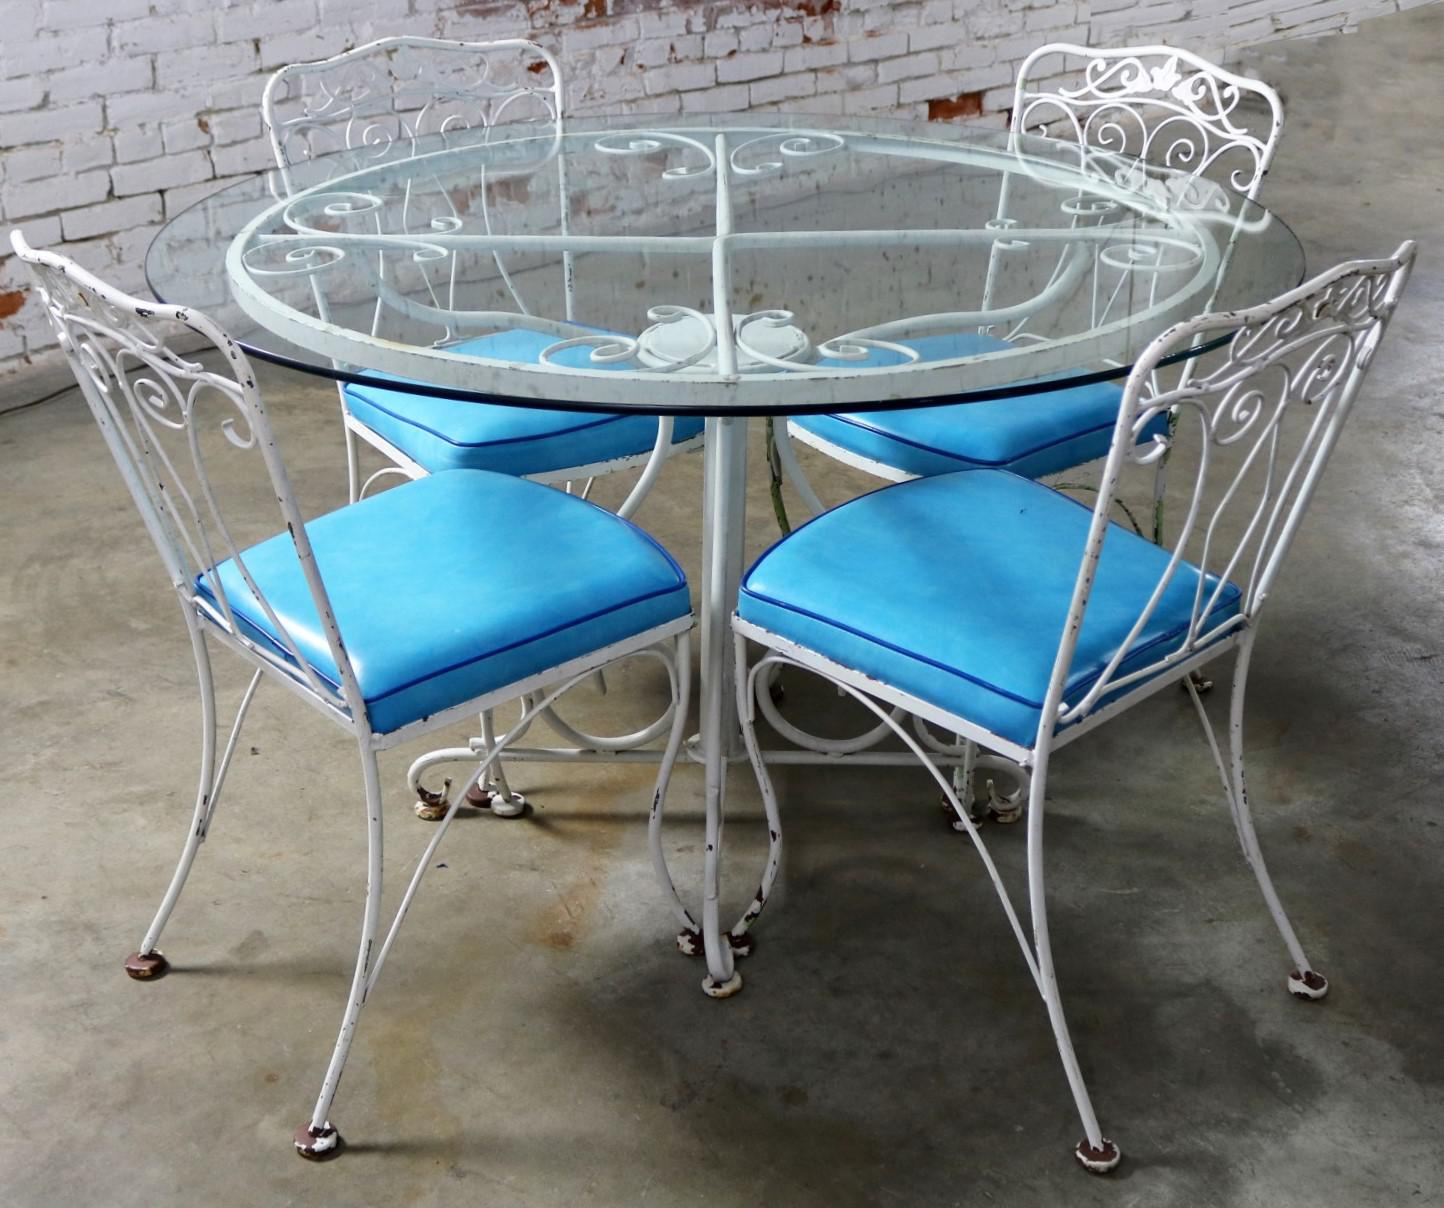 Salterini Style Wrought Iron Patio Set Round Table And Four Chairs With  Turquoise Vinyl Seats For